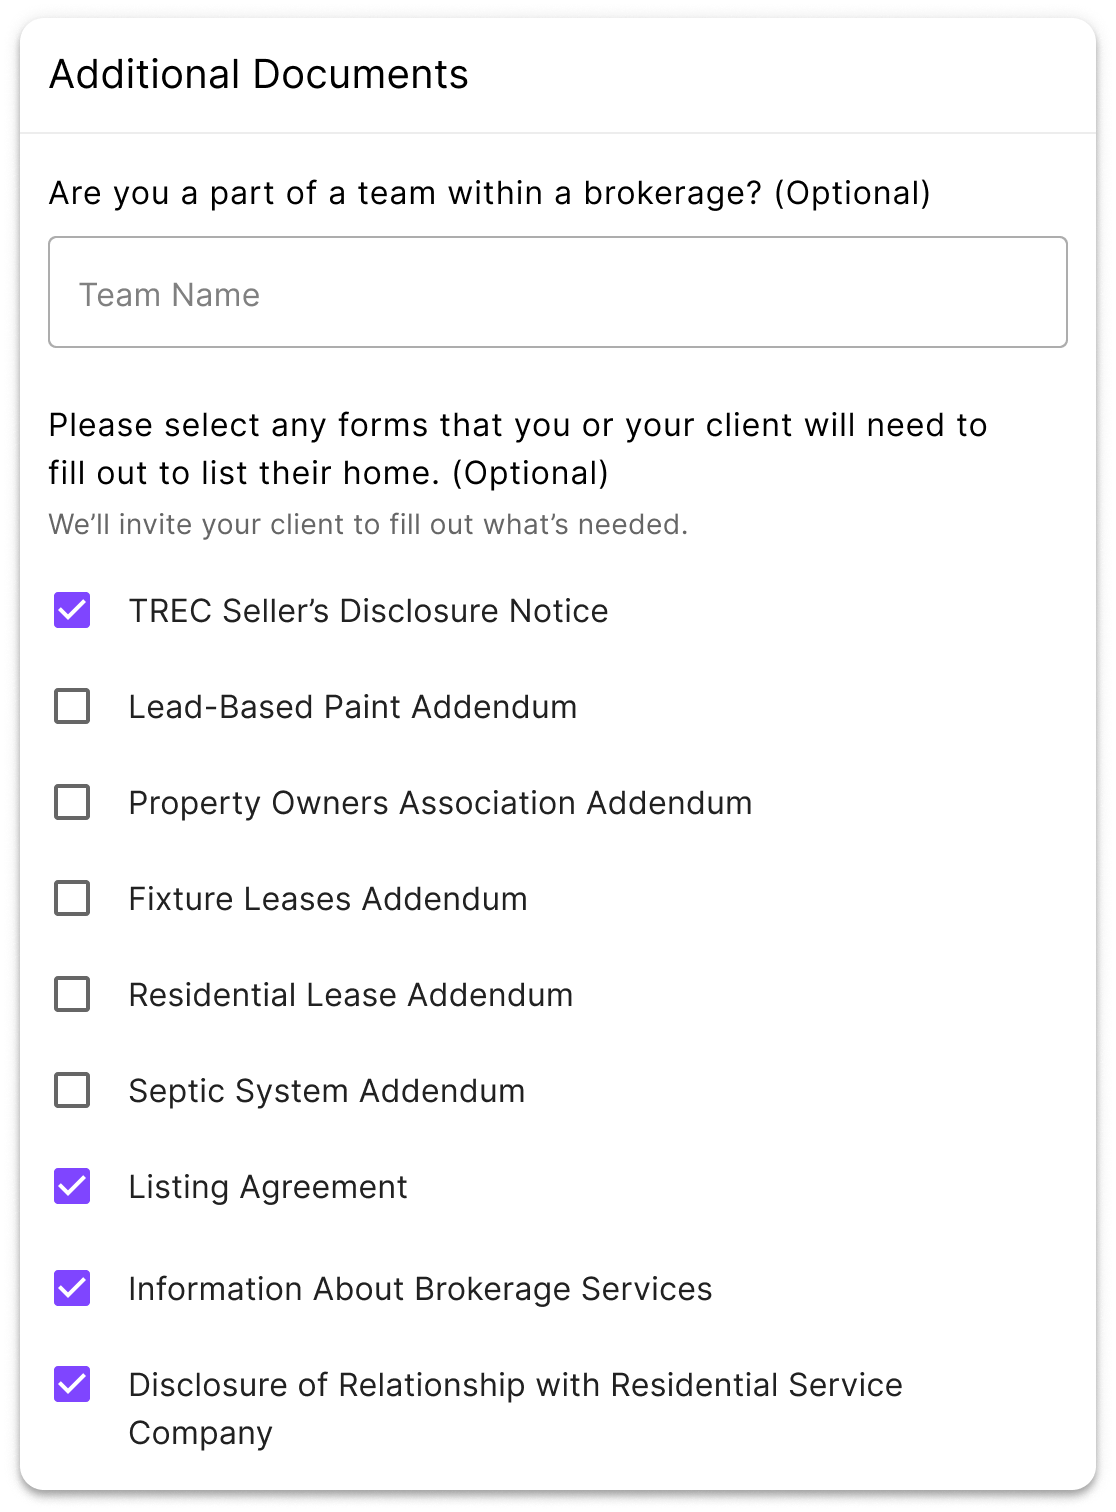 select additional documents for listing